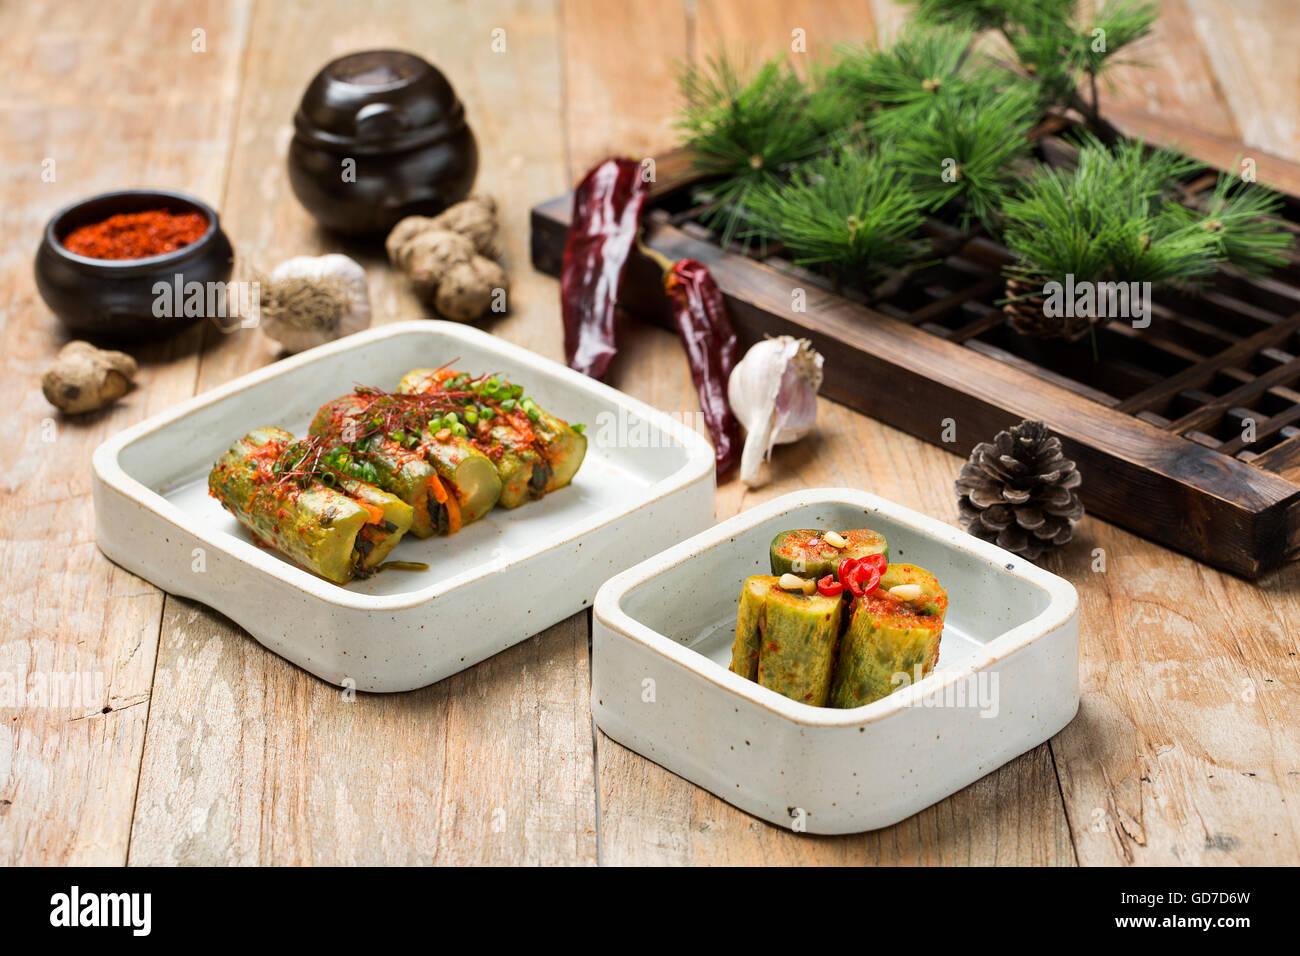 Korean Traditional Food - Kimchi (Fermented/Pickled Cucumber, Asian Cuisine) - Stock Image